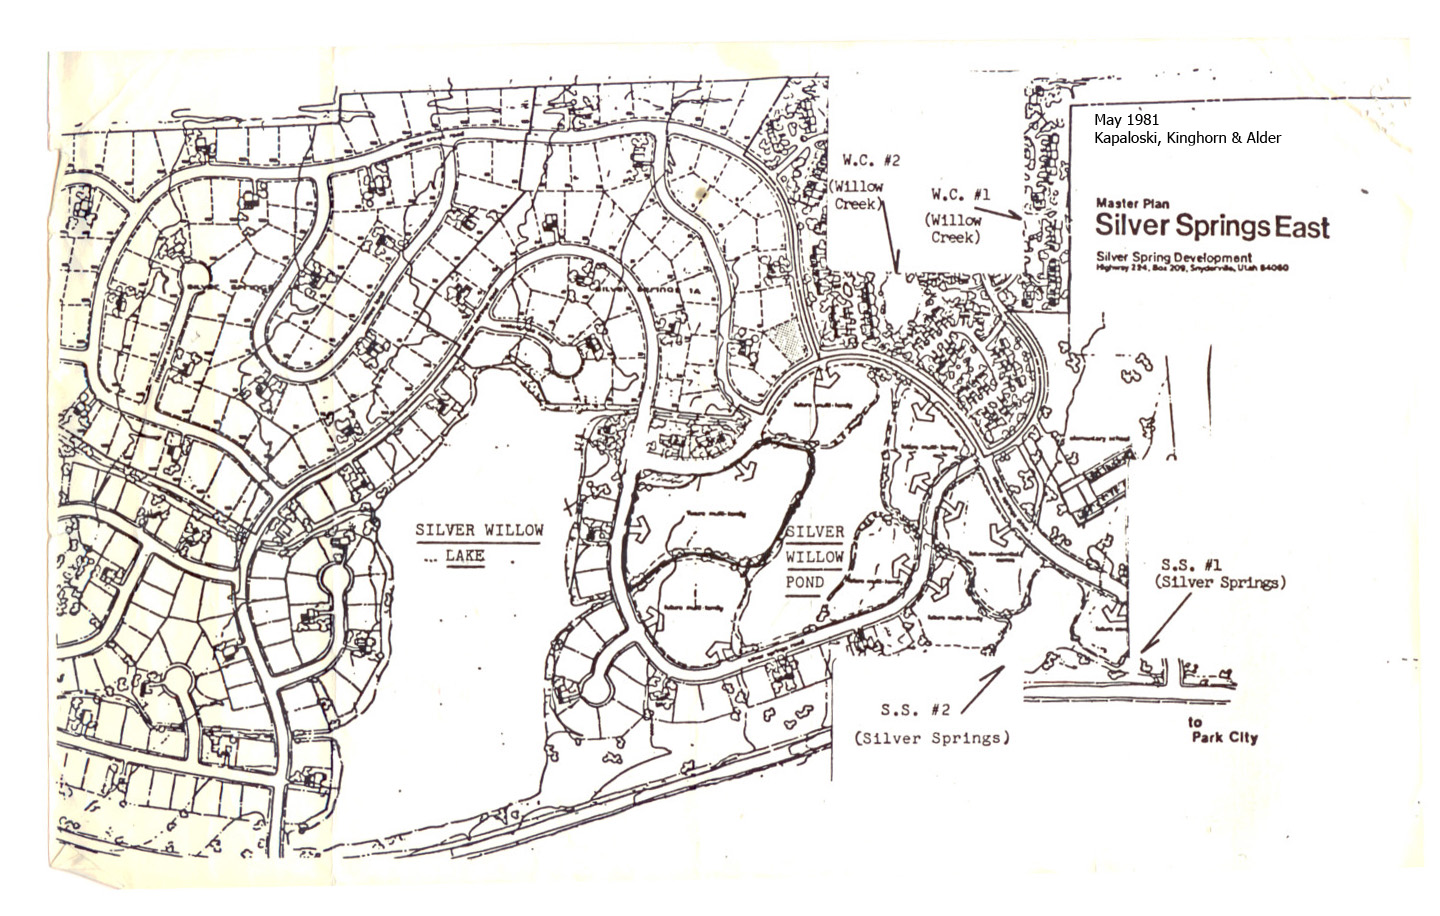 1981 May - Master Plan Silver Springs East and Waterways